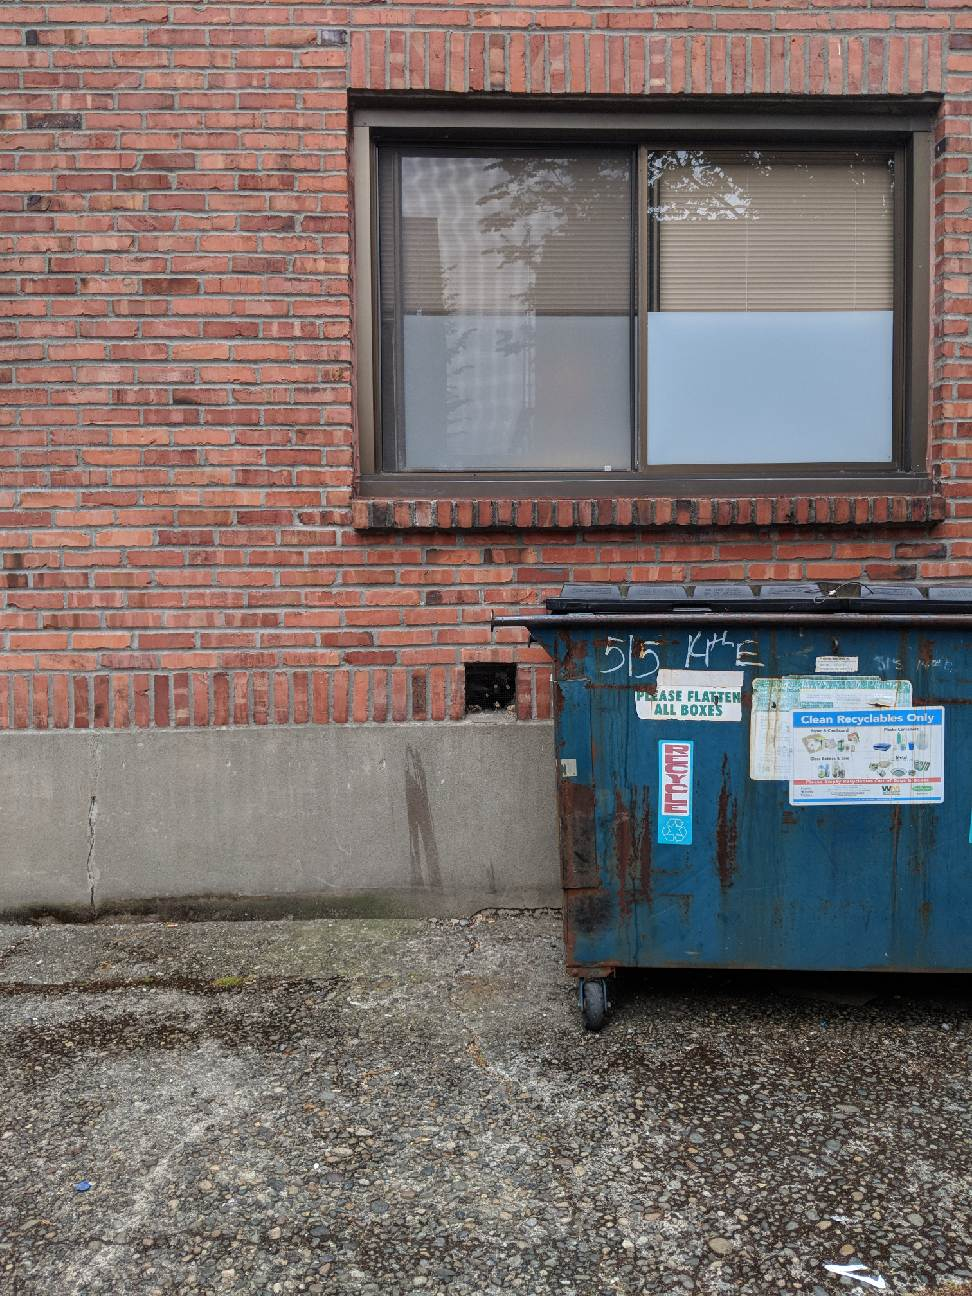 Aaron Tyrell, the alley between 13th and 14th Avenue East, Seattle, 4 July 2018.